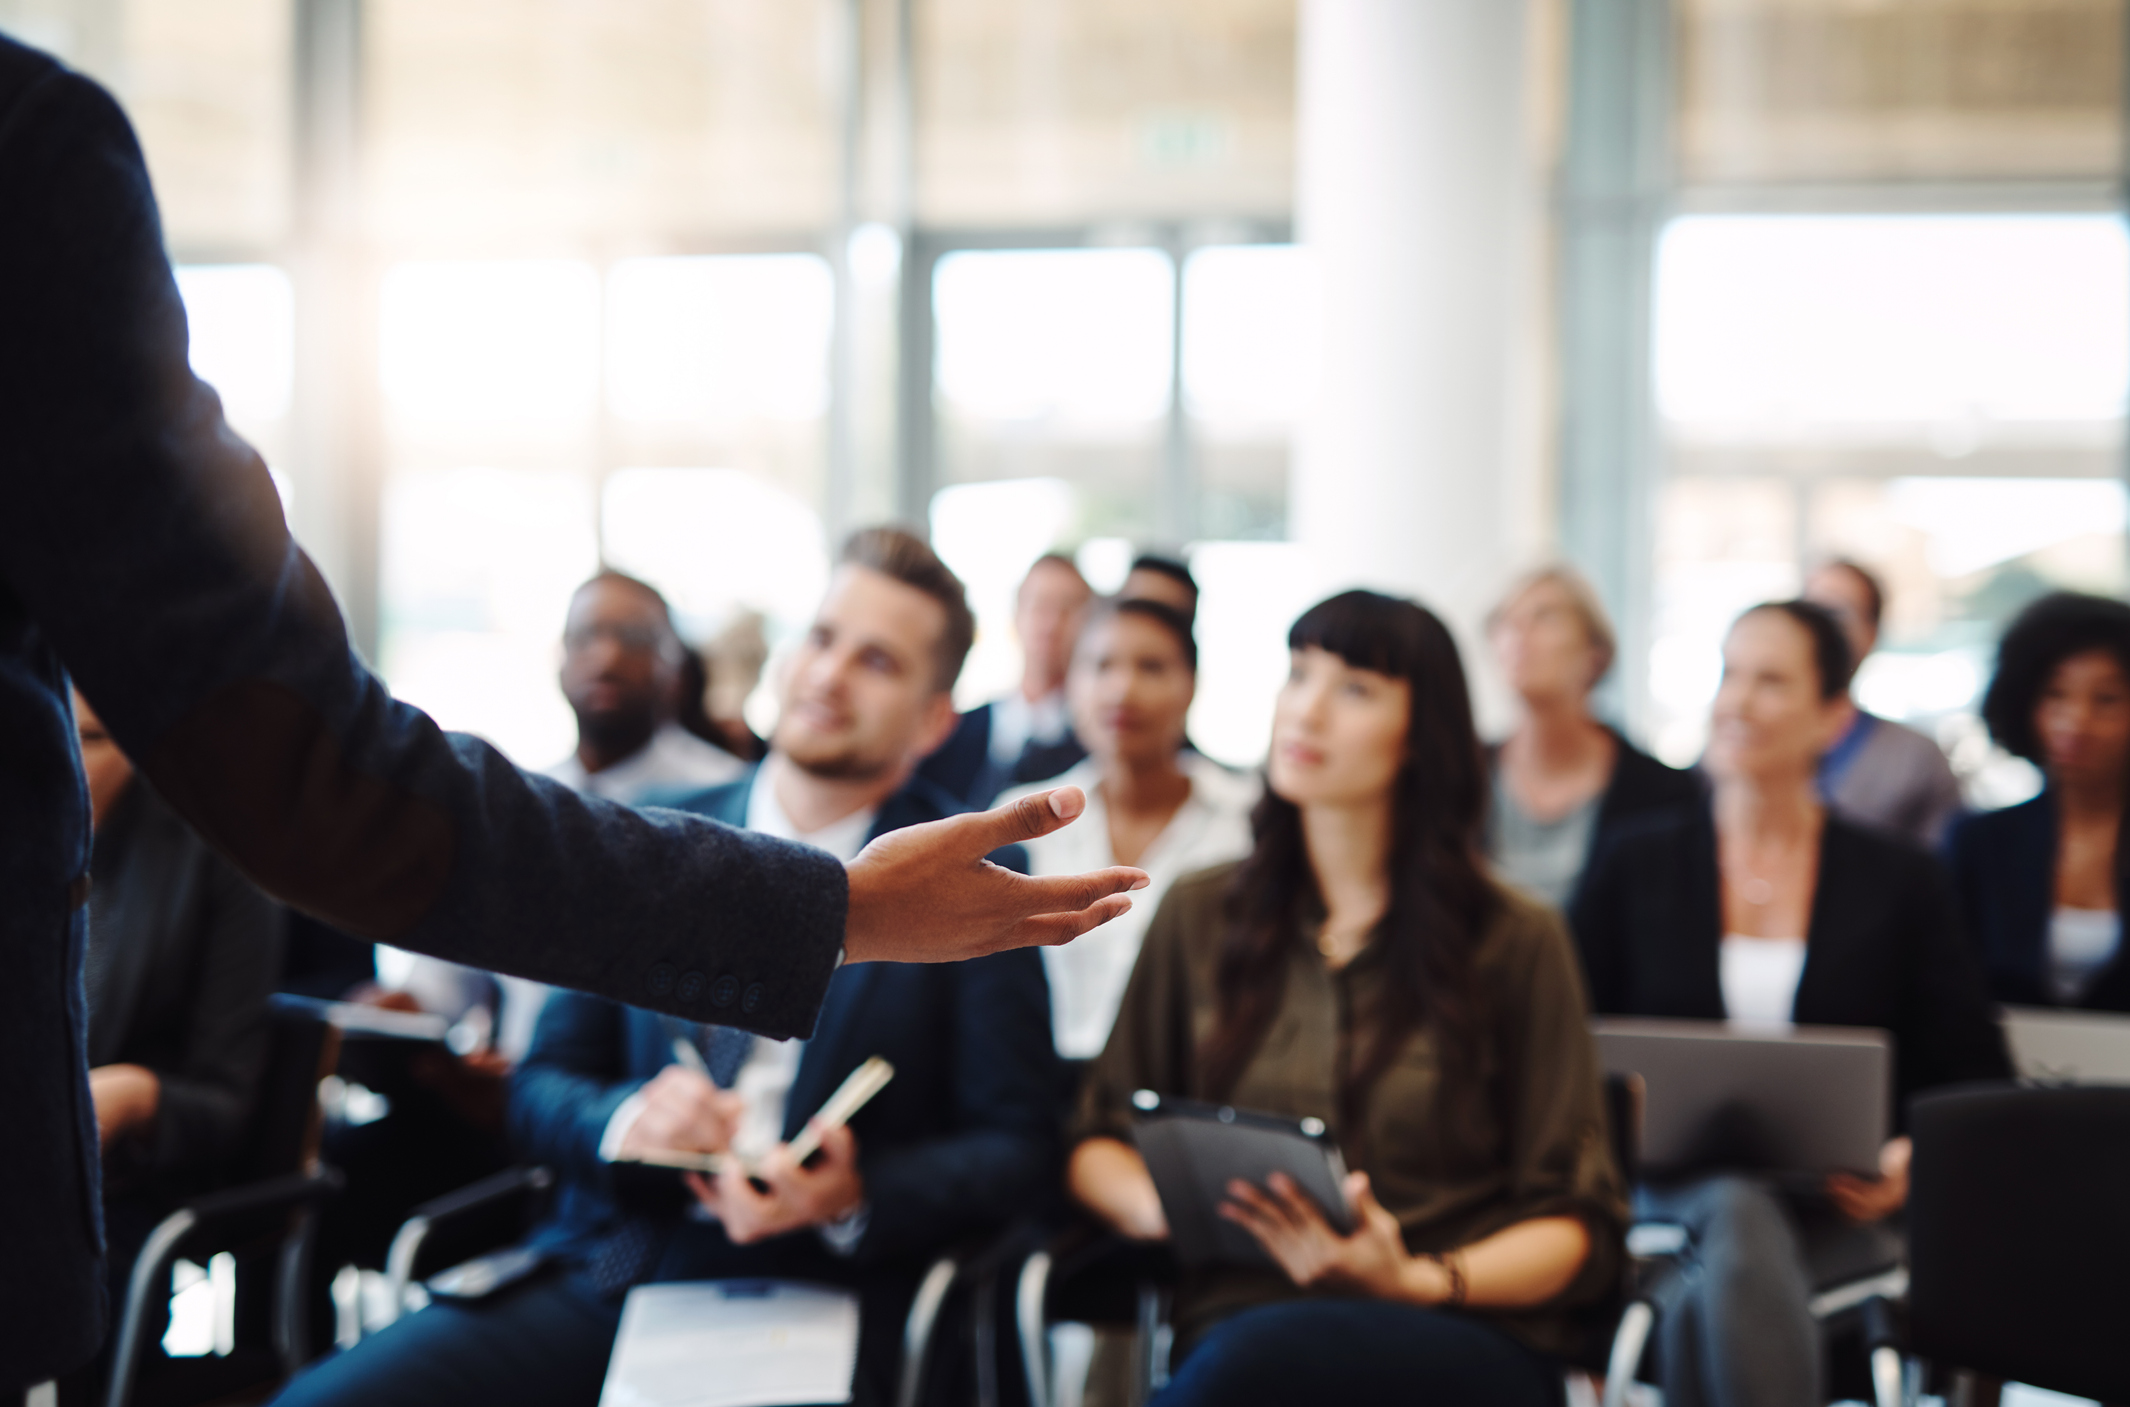 how to analyze audience for effective conference presentation